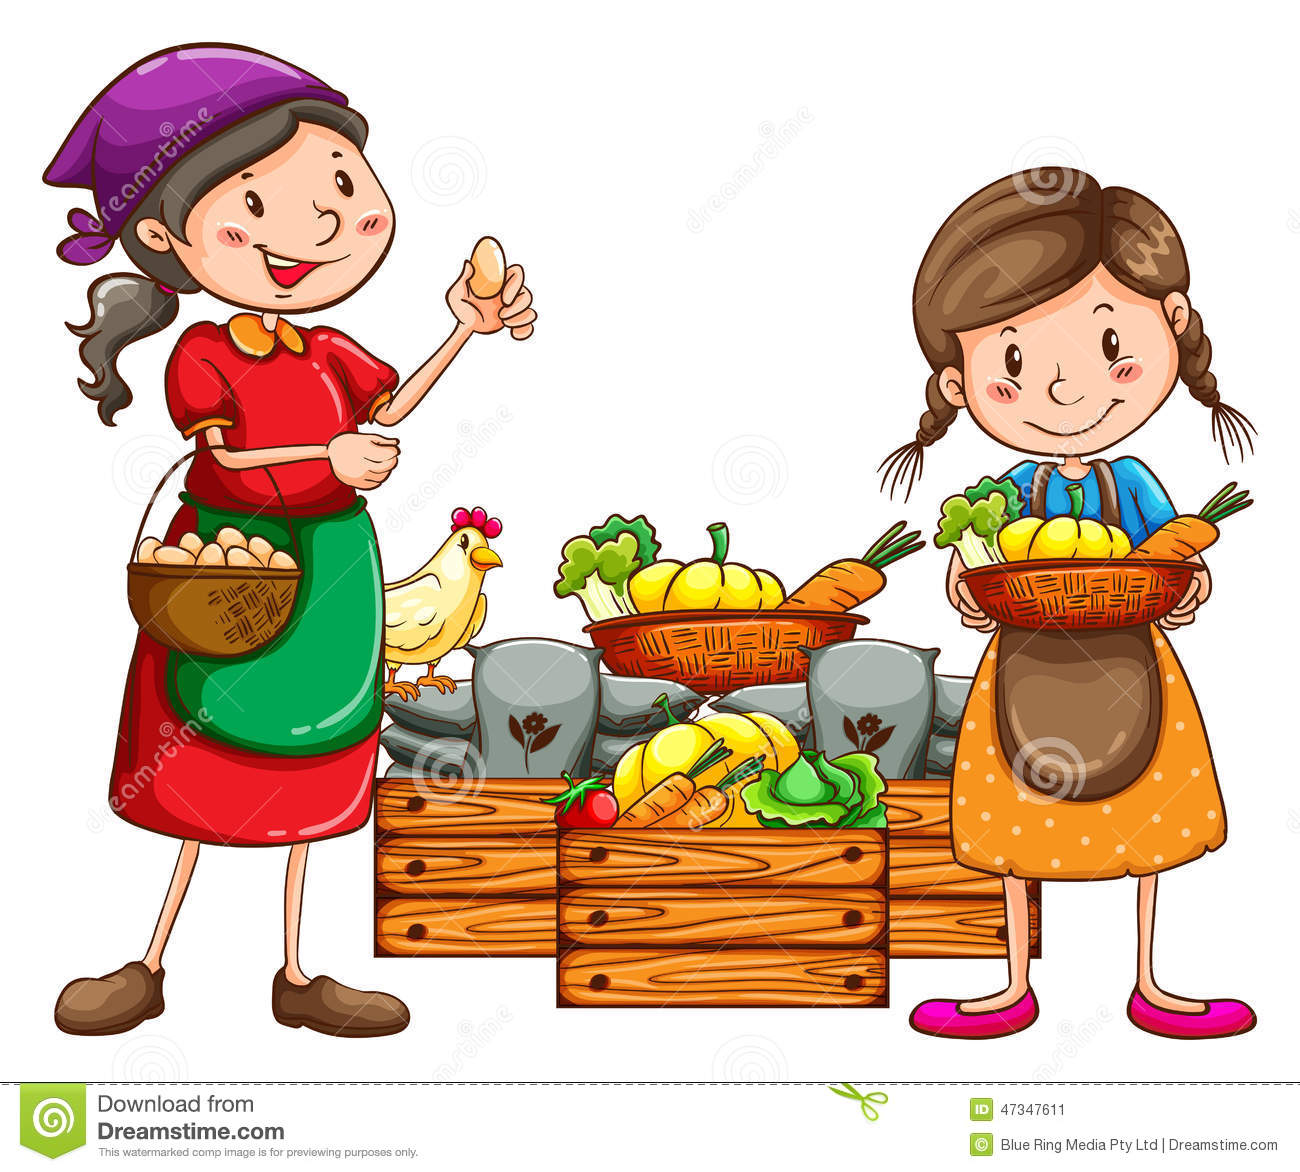 Vegetable vendor clipart 5 » Clipart Station.